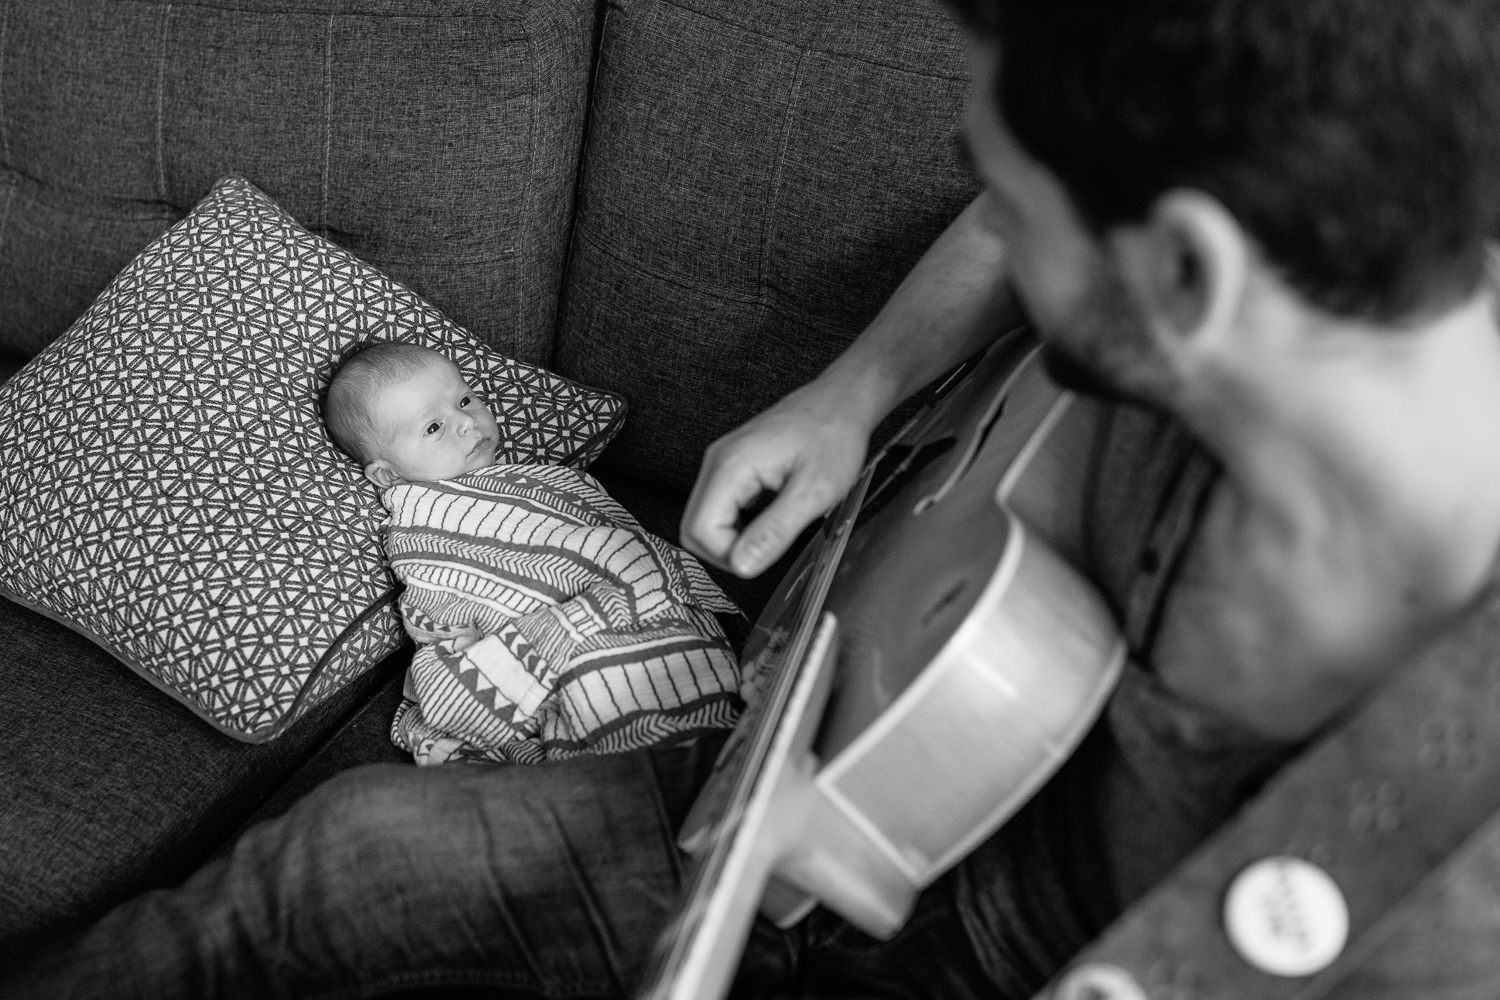 new dad sitting on living room couch playing guitar and singing to 2 week old baby boy lying against cushions watching father - Stouffville In-HomePhotography